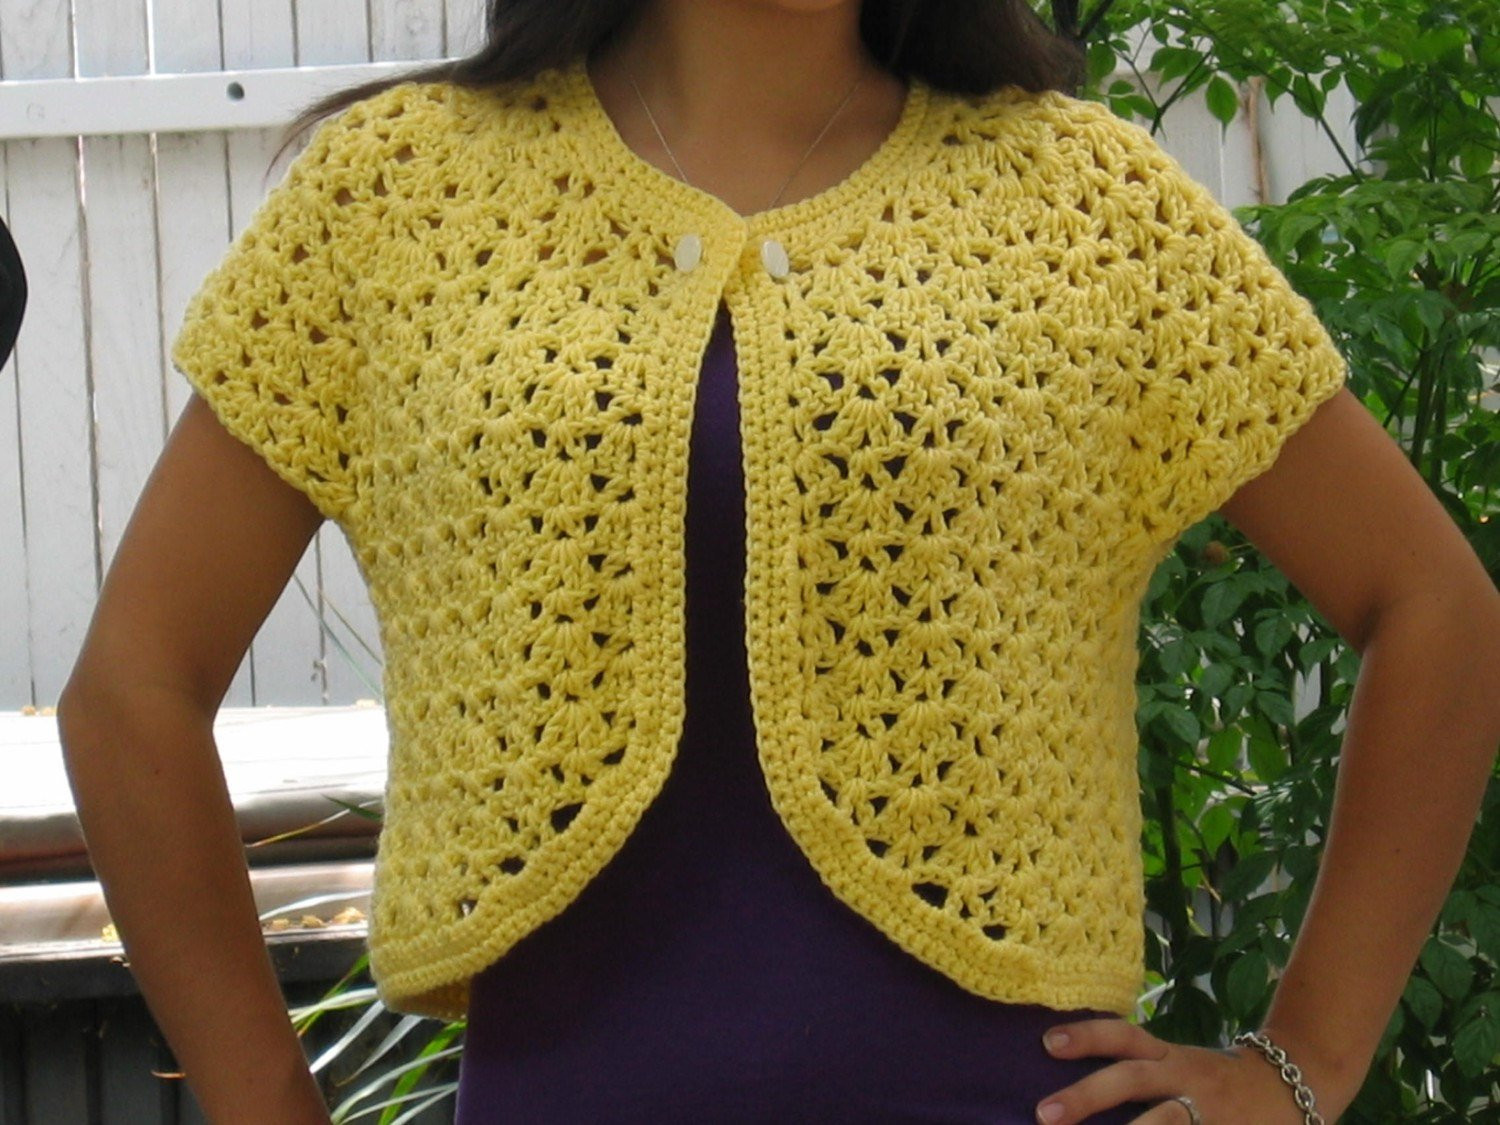 Awesome Sweater Pattern Beginner Easy Cardigan with buttons Easy Crochet Sweater Patterns Beginners Of Perfect 44 Ideas Easy Crochet Sweater Patterns Beginners